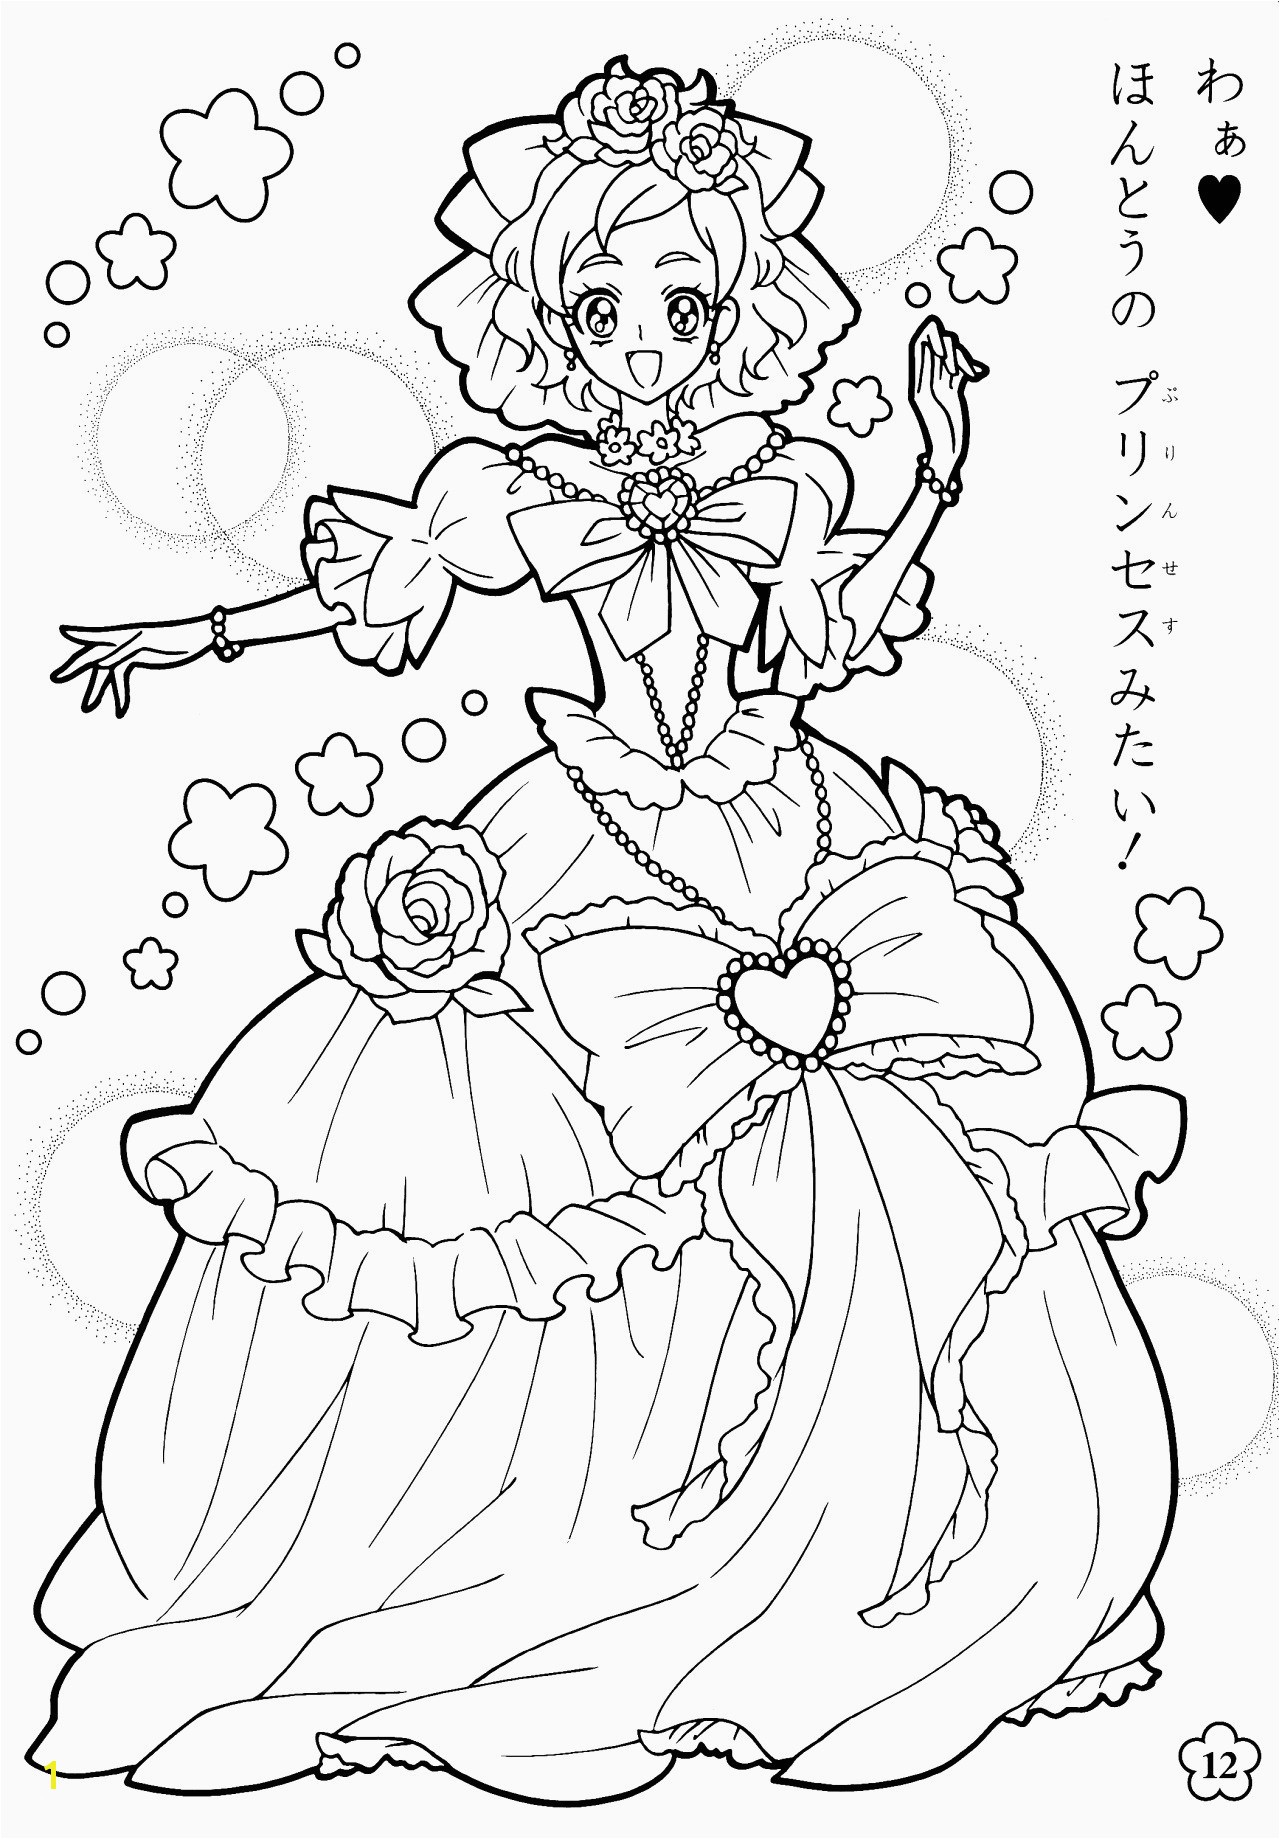 Cool Coloring Page Unique Witch Coloring Pages New Crayola Pages 0d Cool Coloring Page Unique